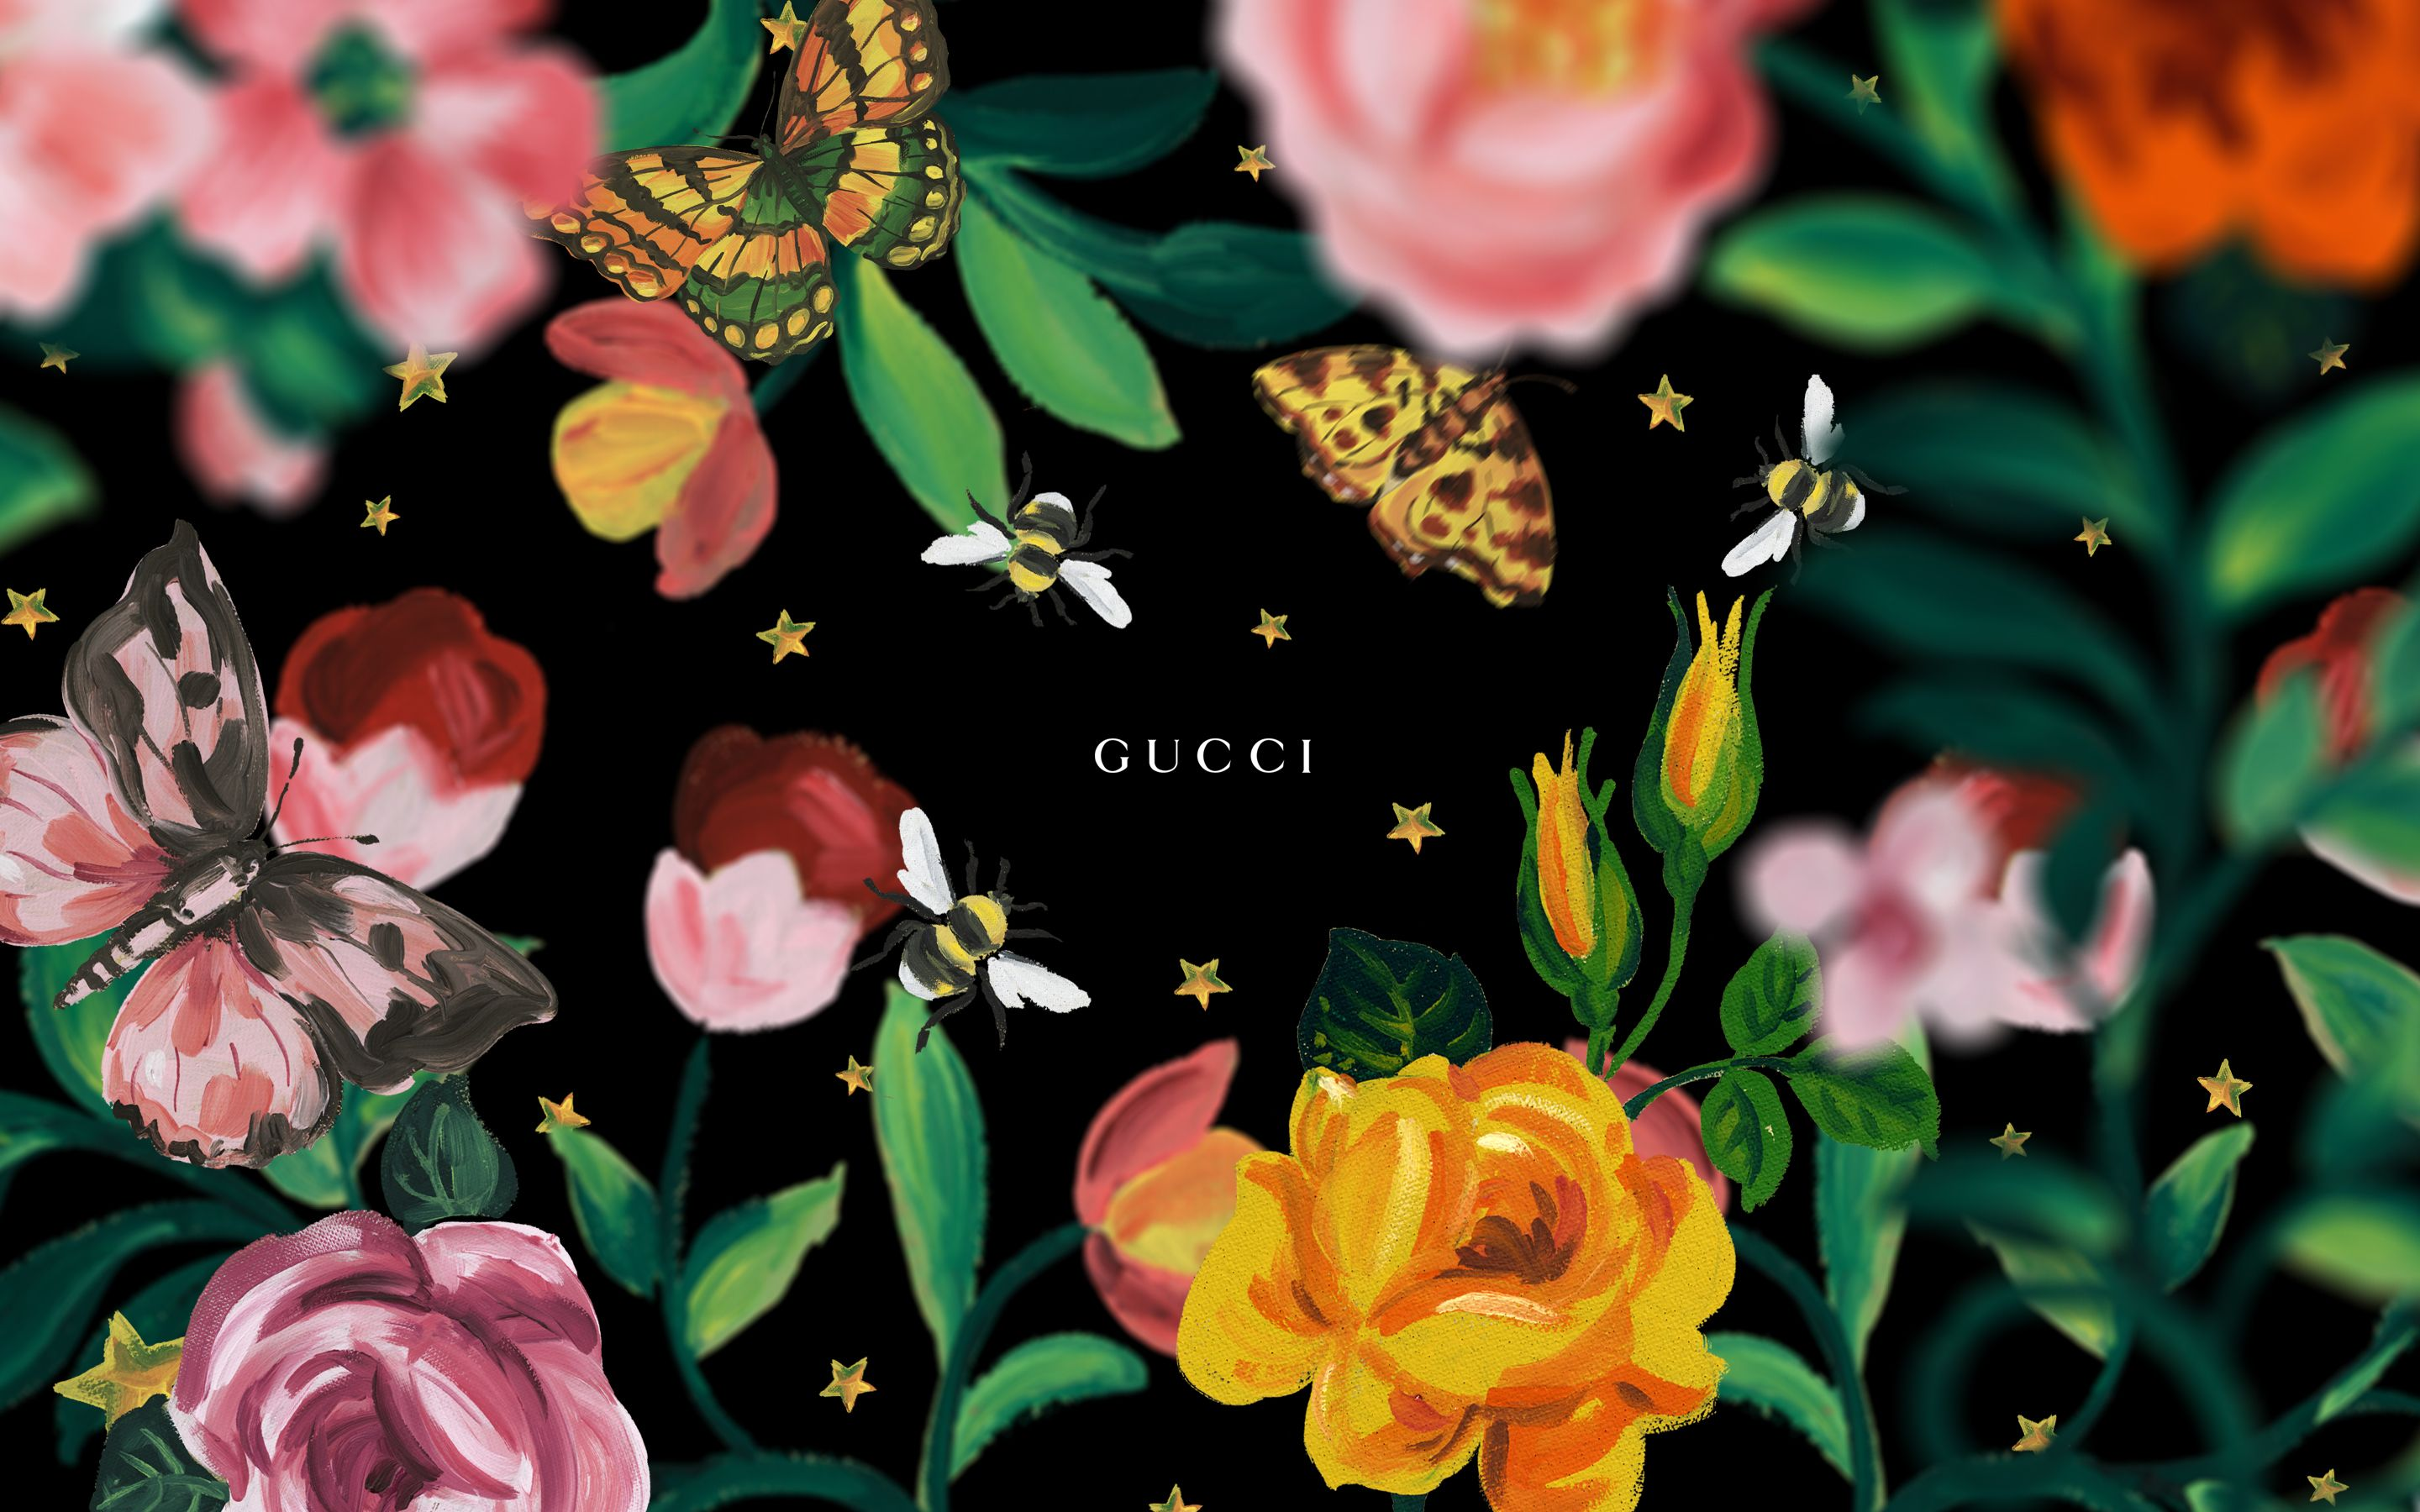 Gucci Laptop Wallpapers   Top Gucci Laptop Backgrounds 2880x1800